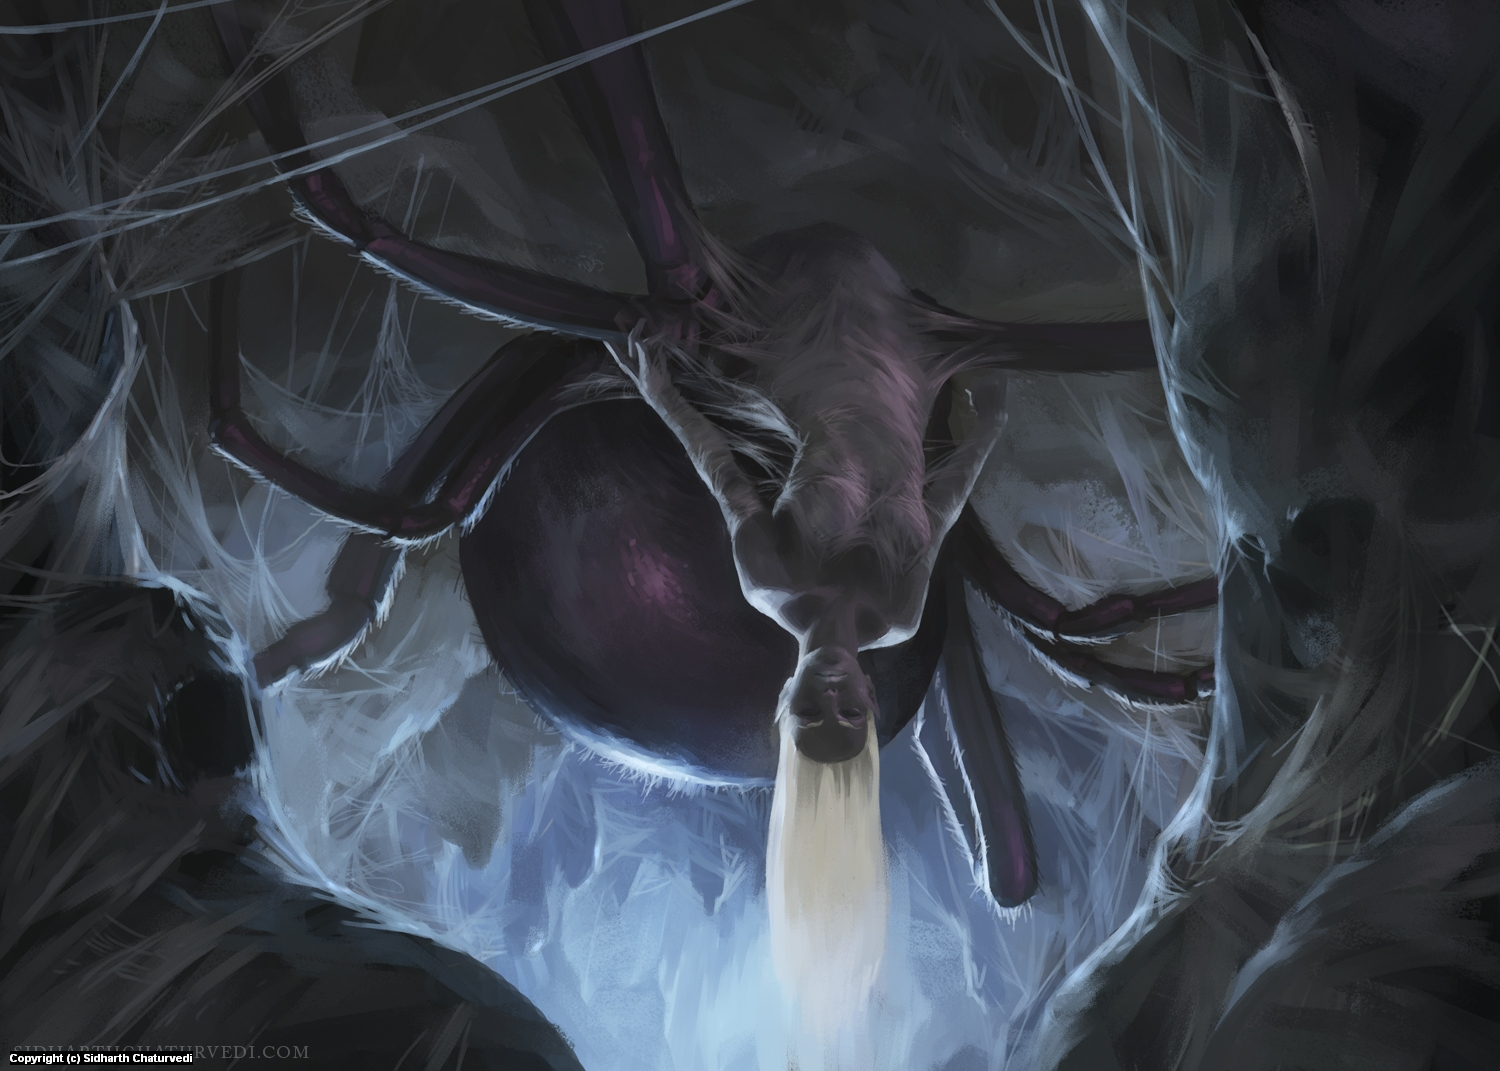 Lolth Artwork by Sidharth Chaturvedi